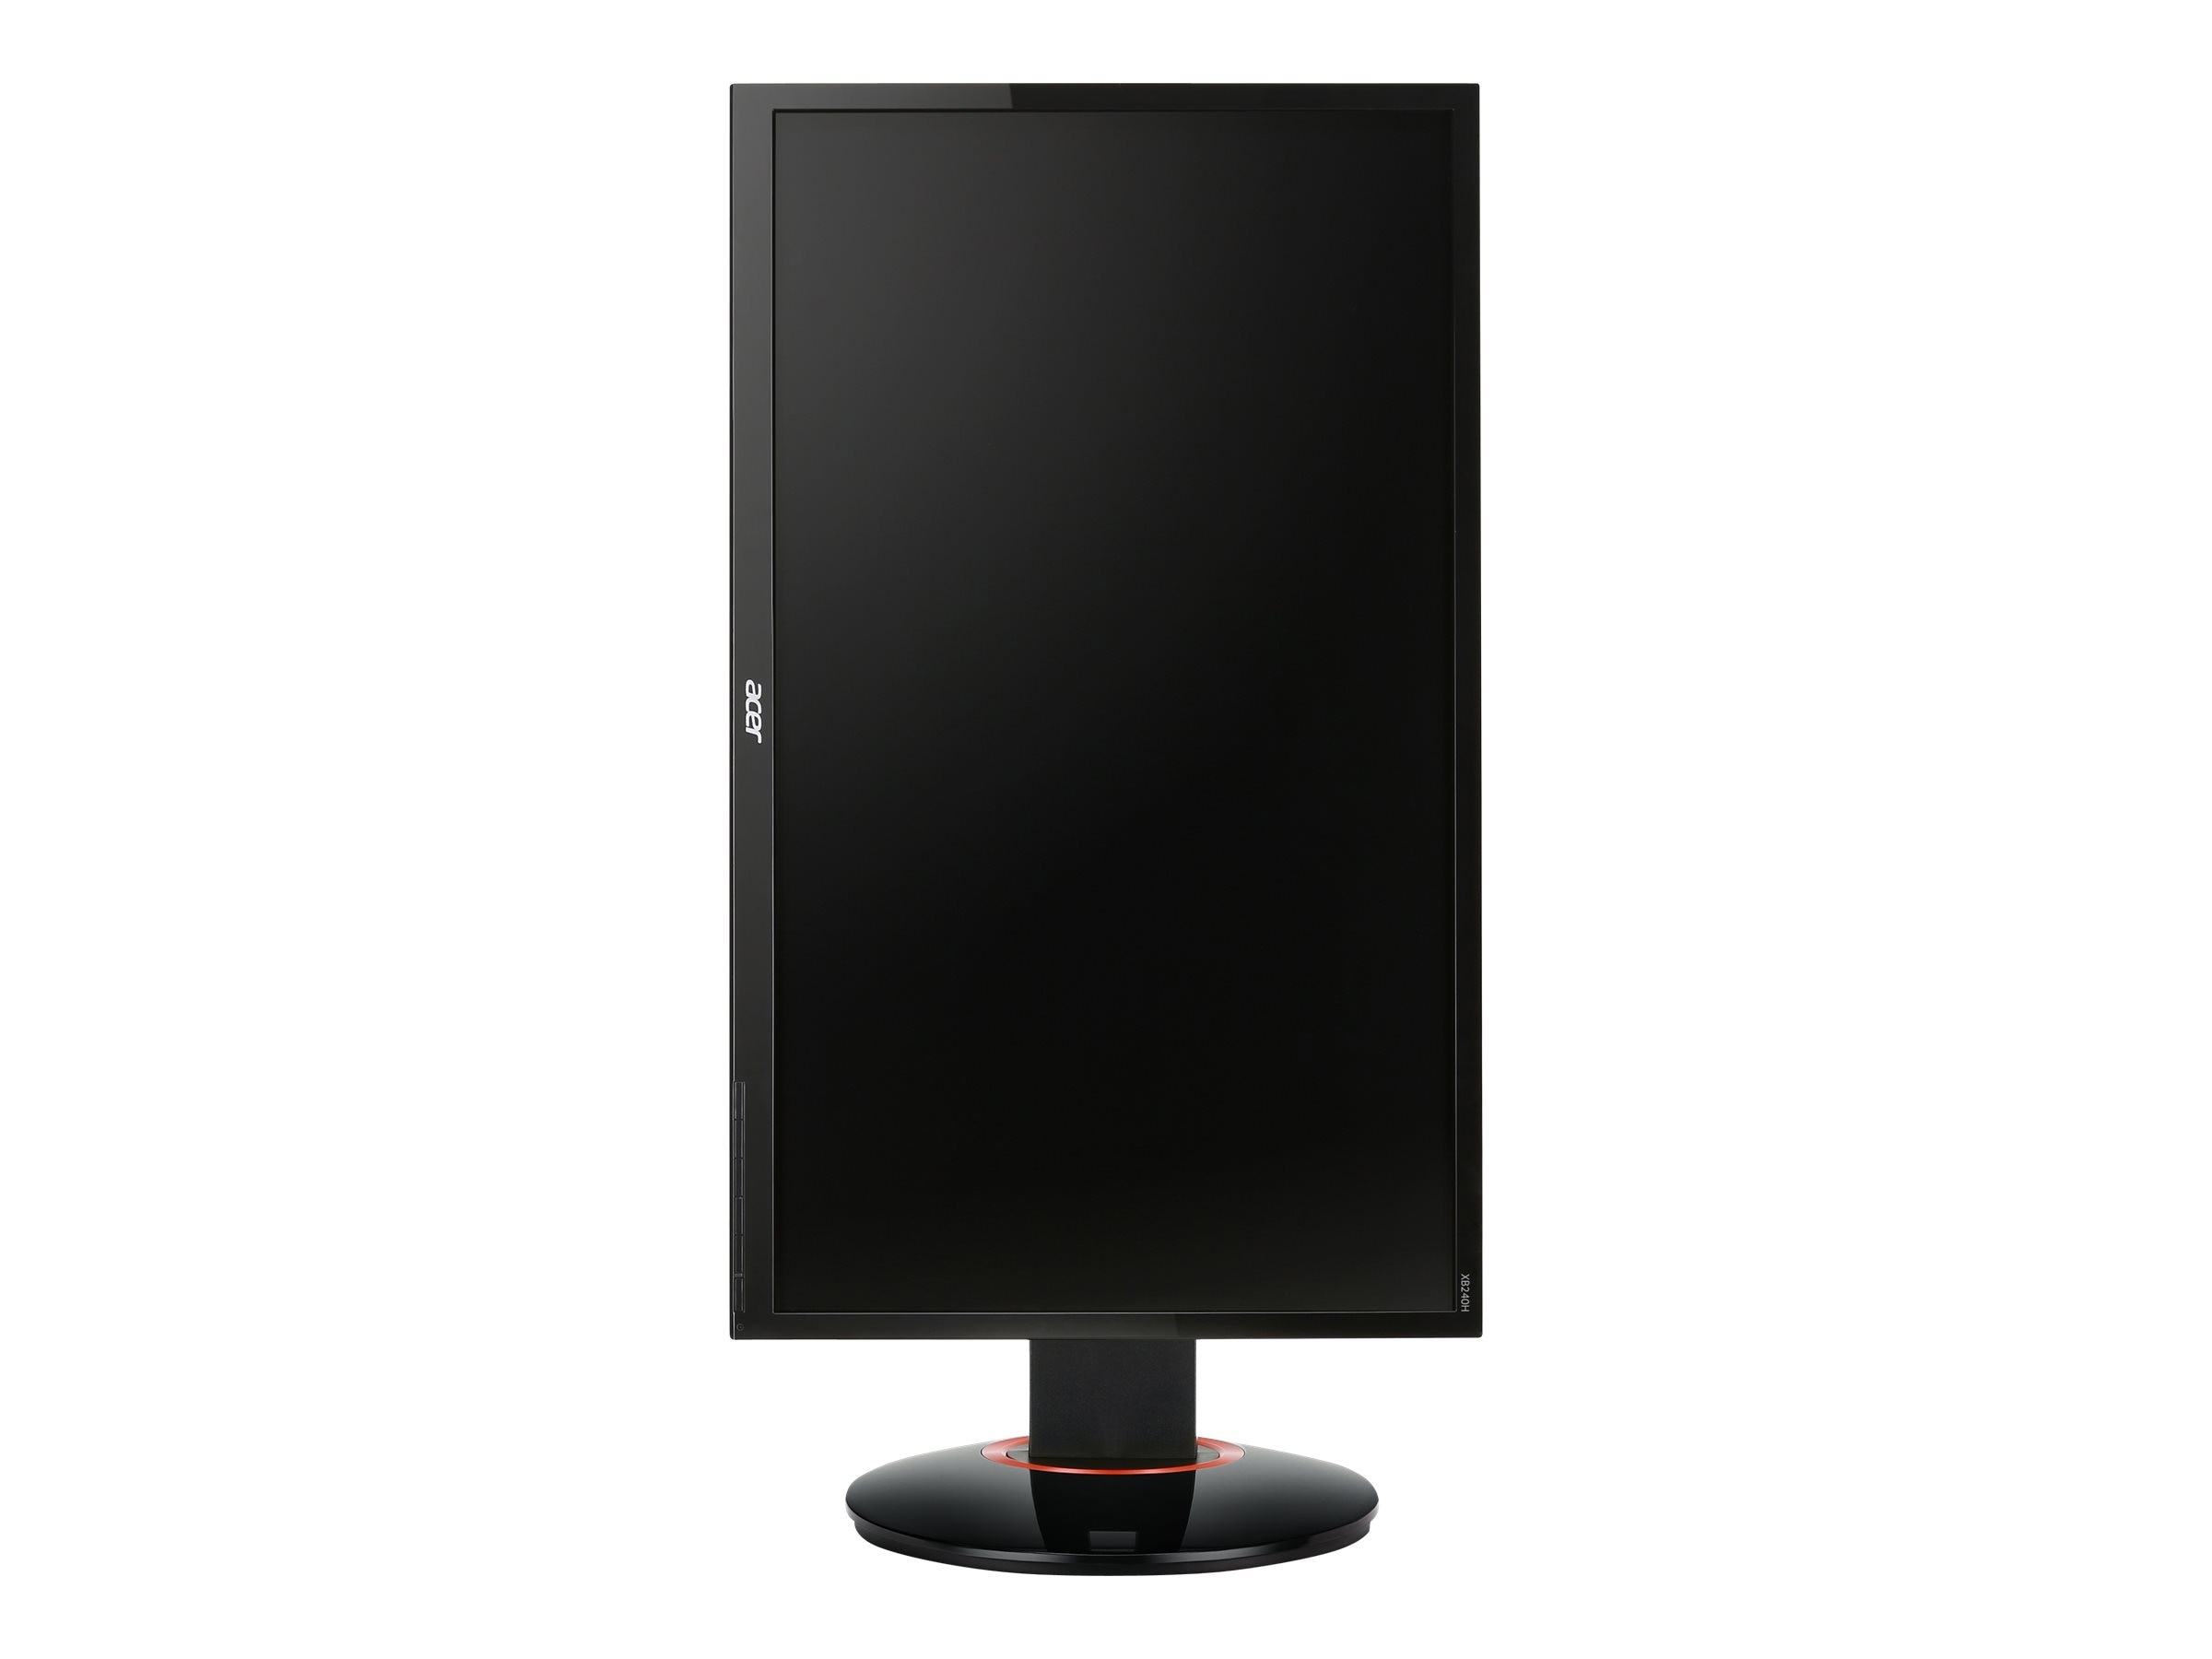 Acer 24 XB240H Abpr Full HD LED-LCD Monitor, Black, UM.FB0AA.A01, 18386212, Monitors - LED-LCD